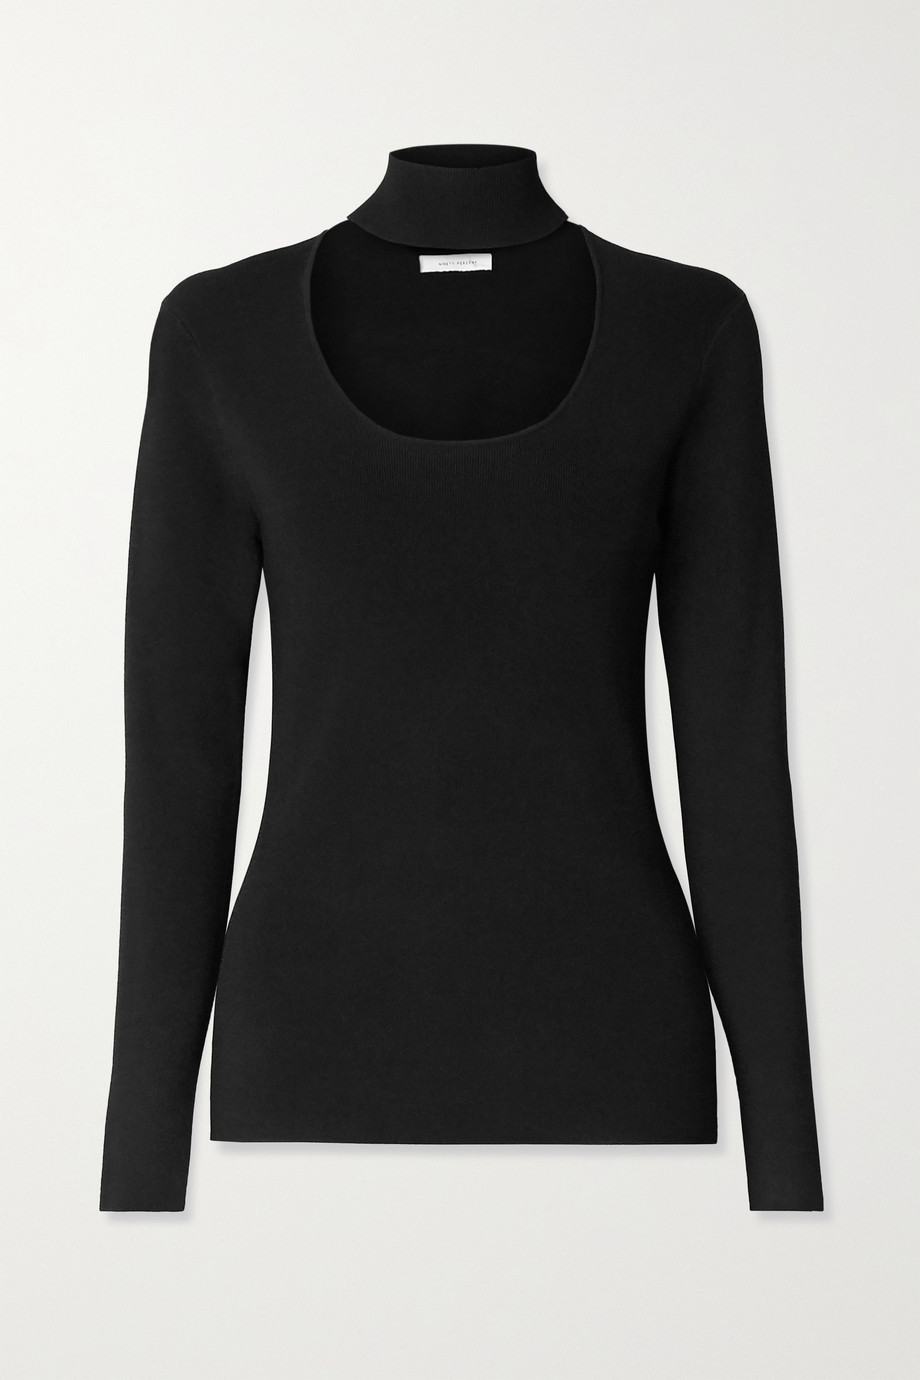 NINETY PERCENT + NET SUSTAIN cutout stretch-knit turtleneck sweater